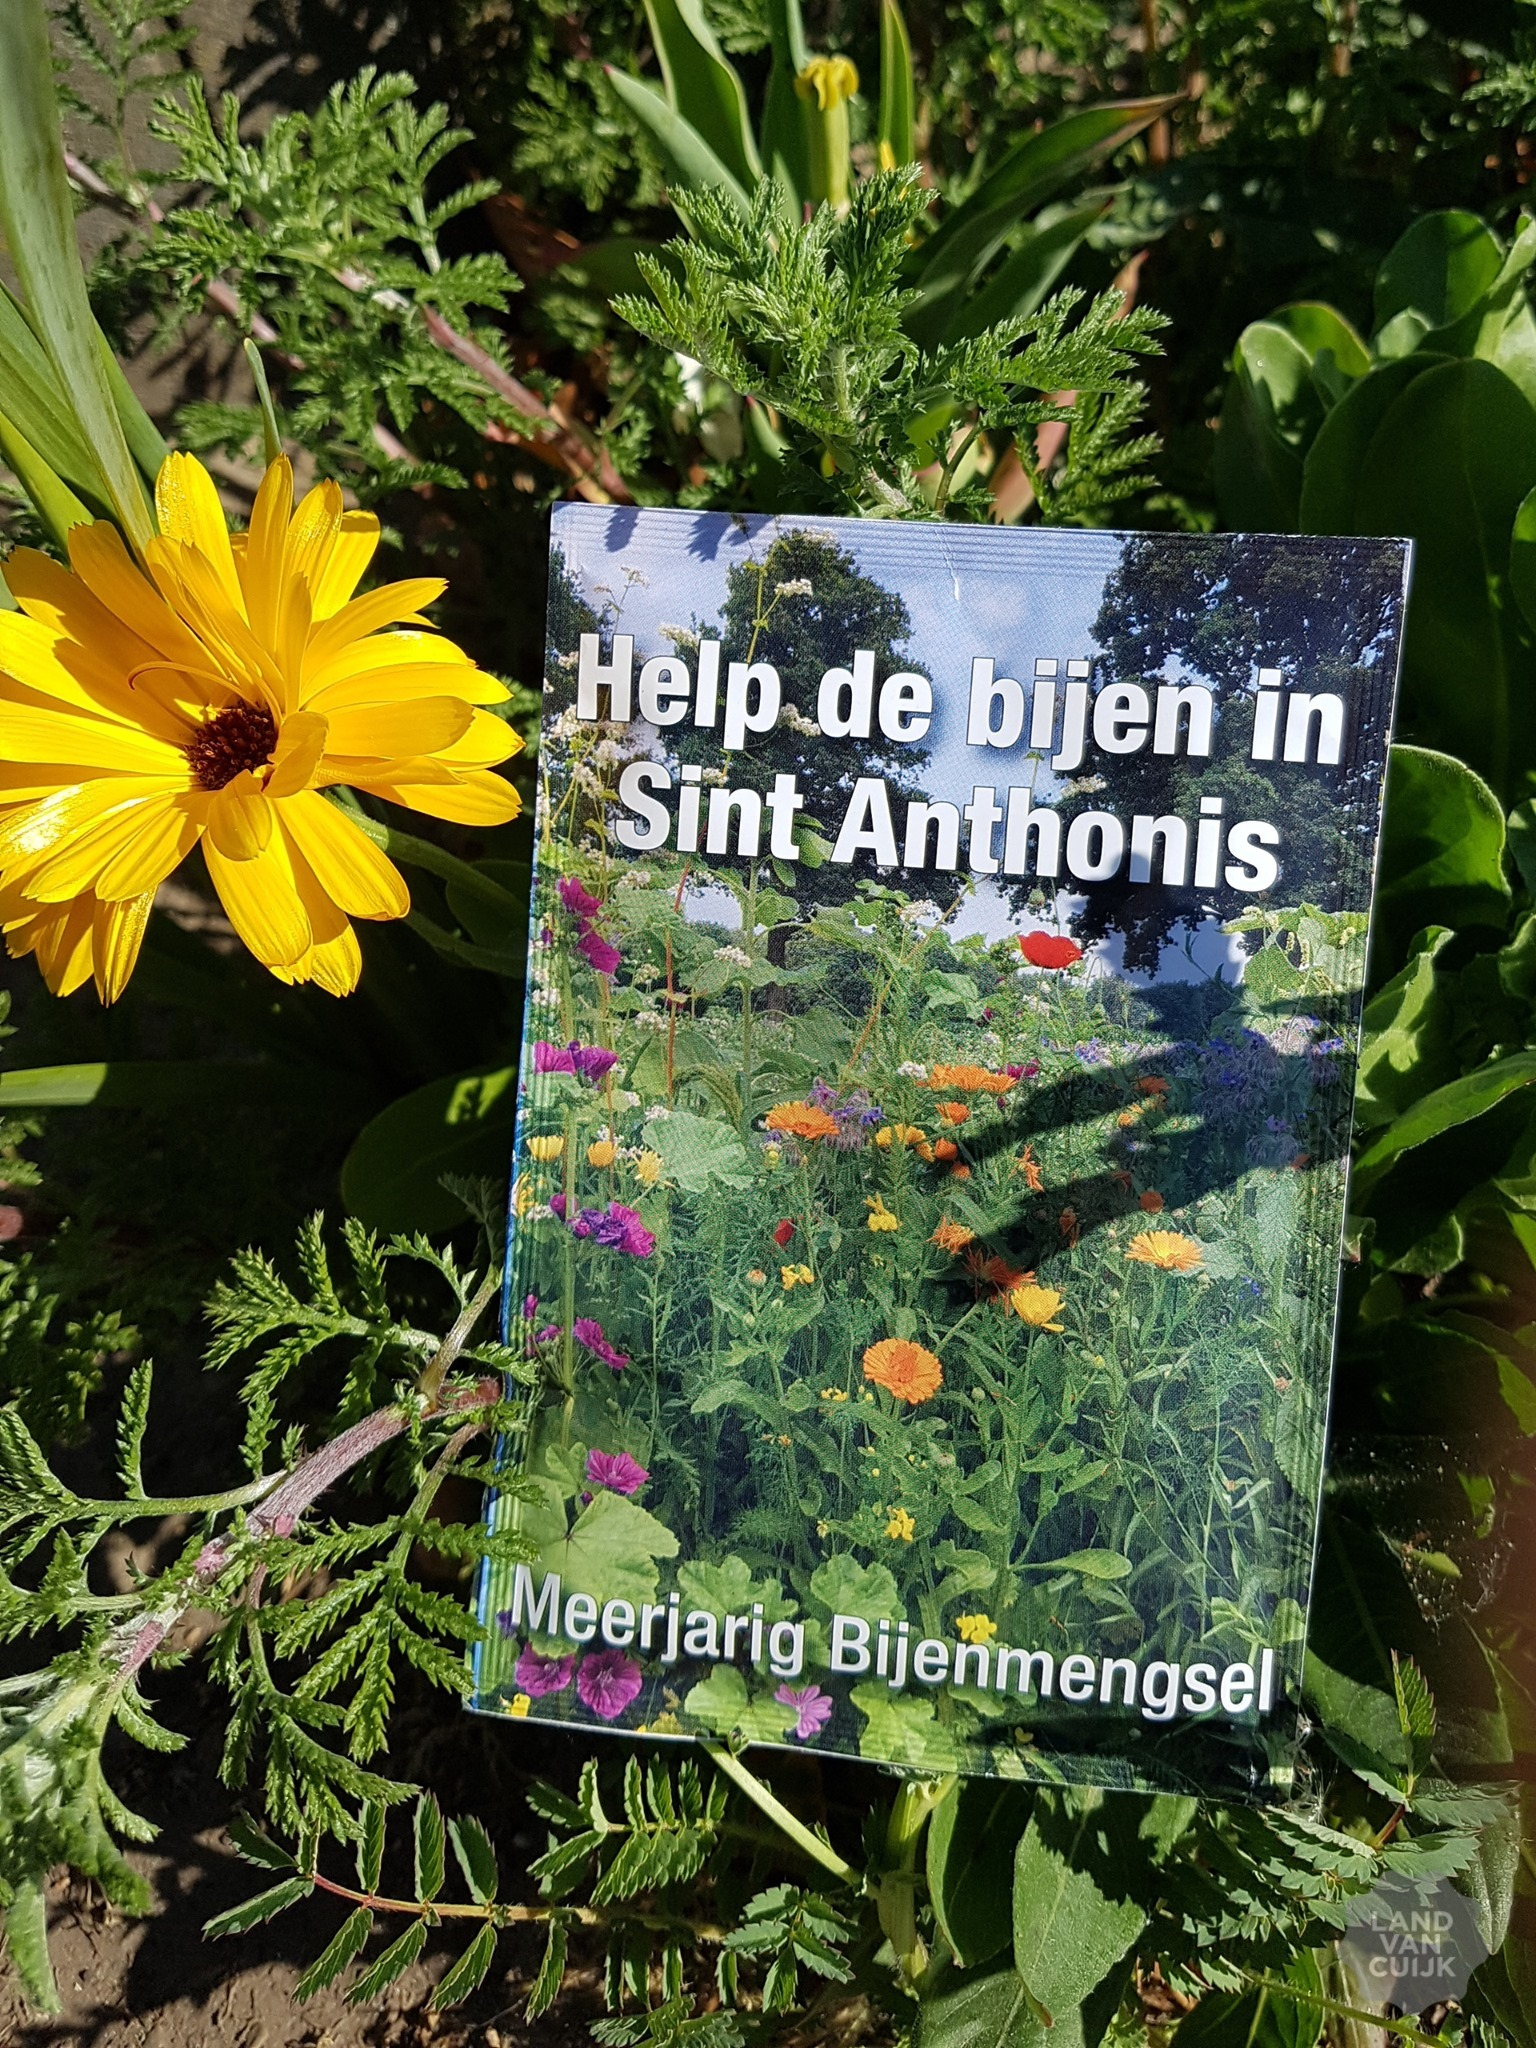 Help de wilde bijen in Sint Anthonis